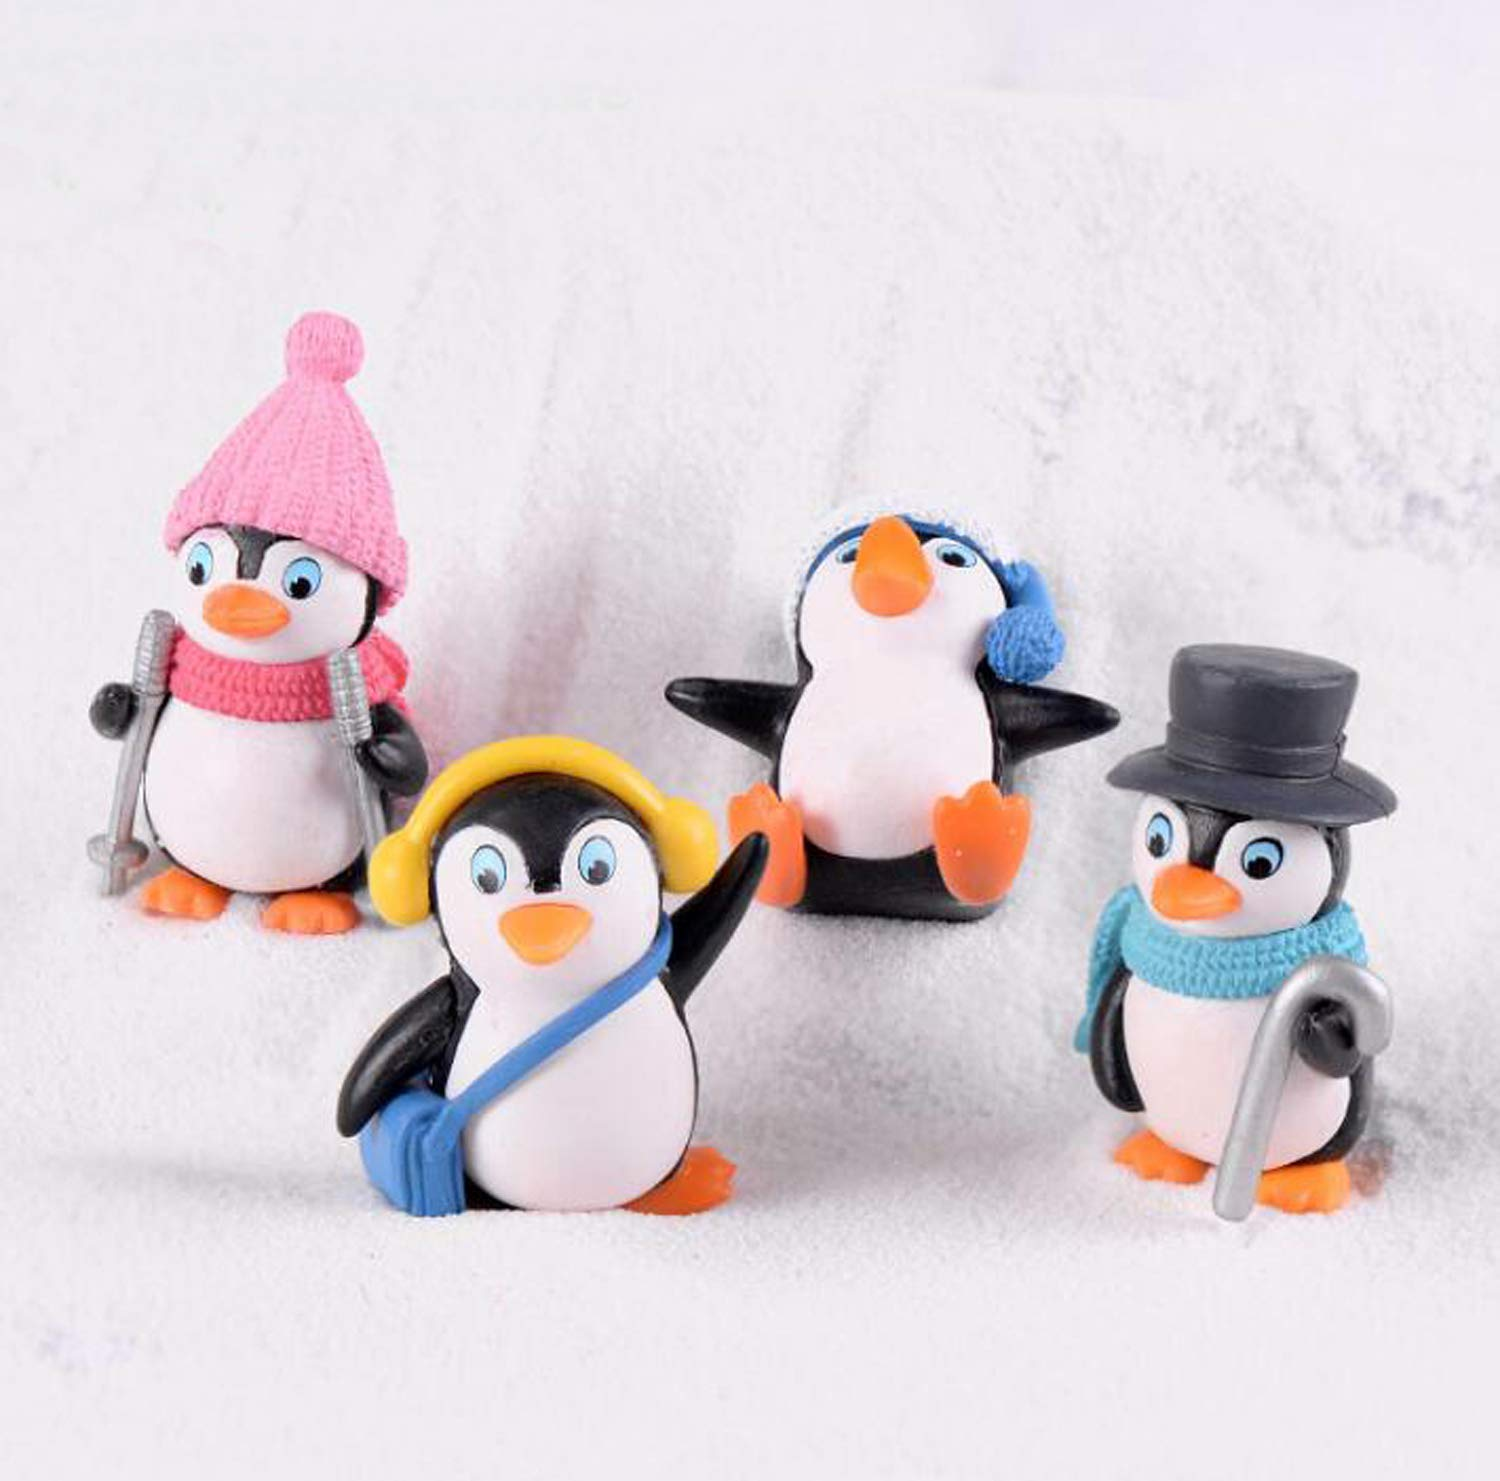 Smilesky Penguin Figure Animal DIY Toys Home Fairy Garden Office Decorations Dolls & Accessories Pack of 4 Toys & Games